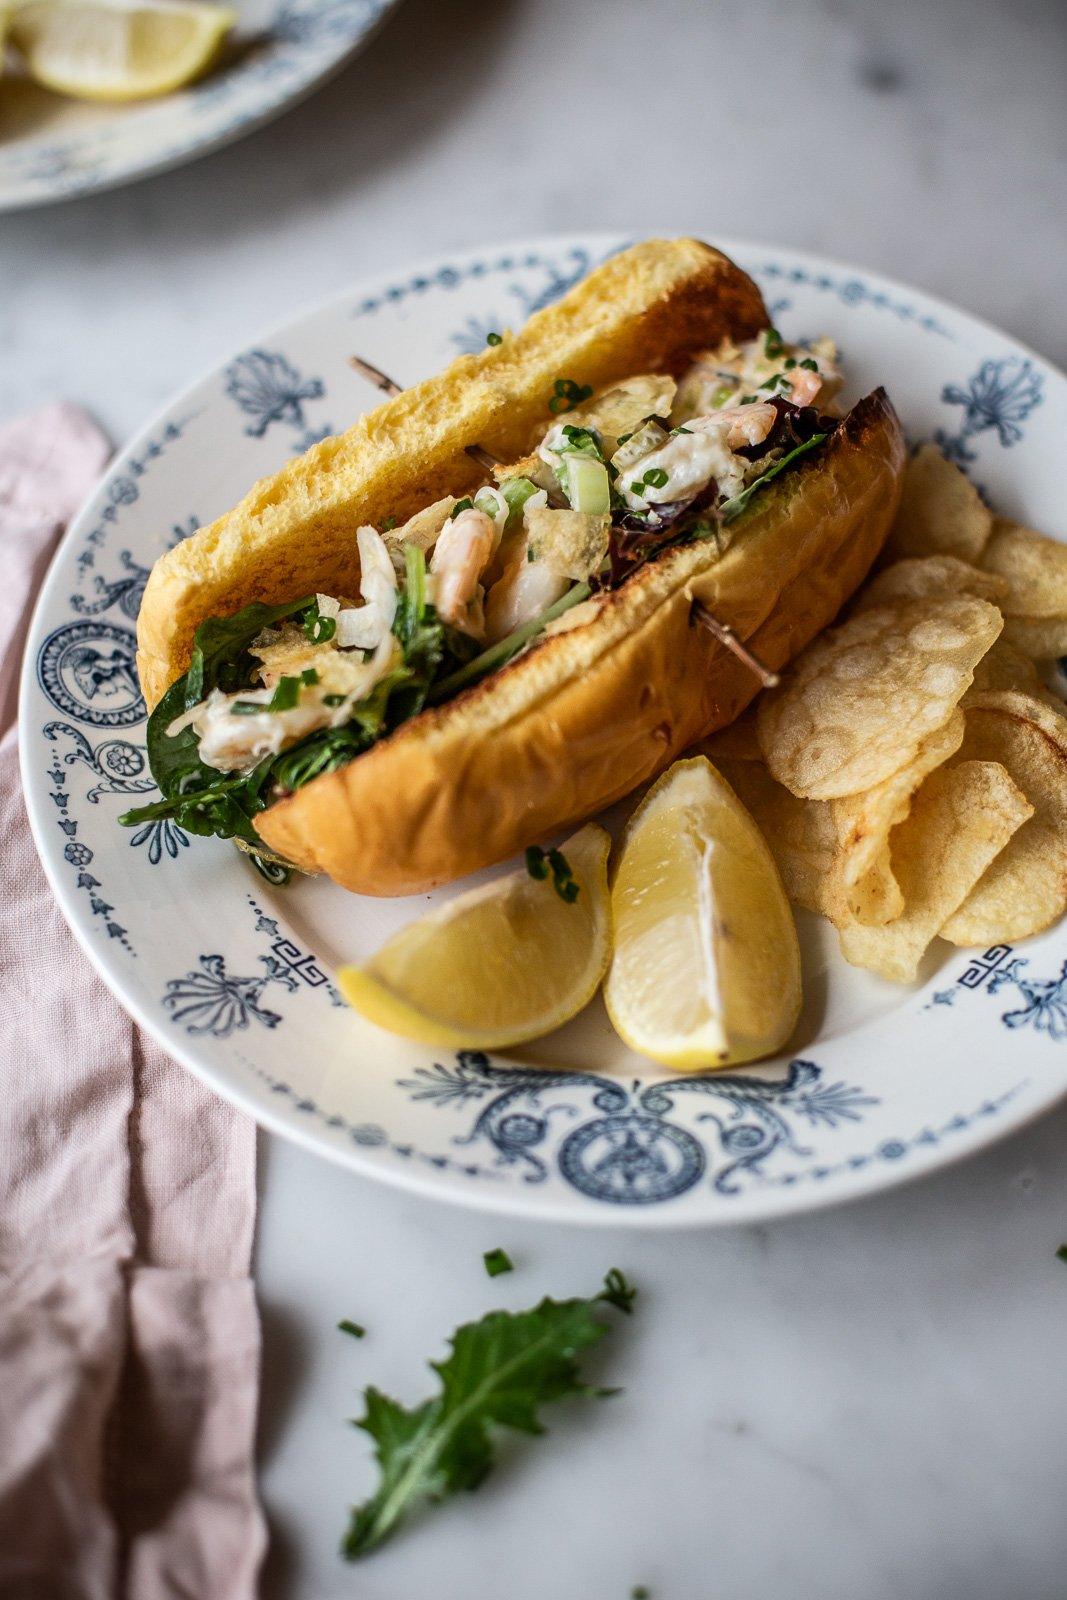 The Best Prawn Roll - Cottonwood & Co